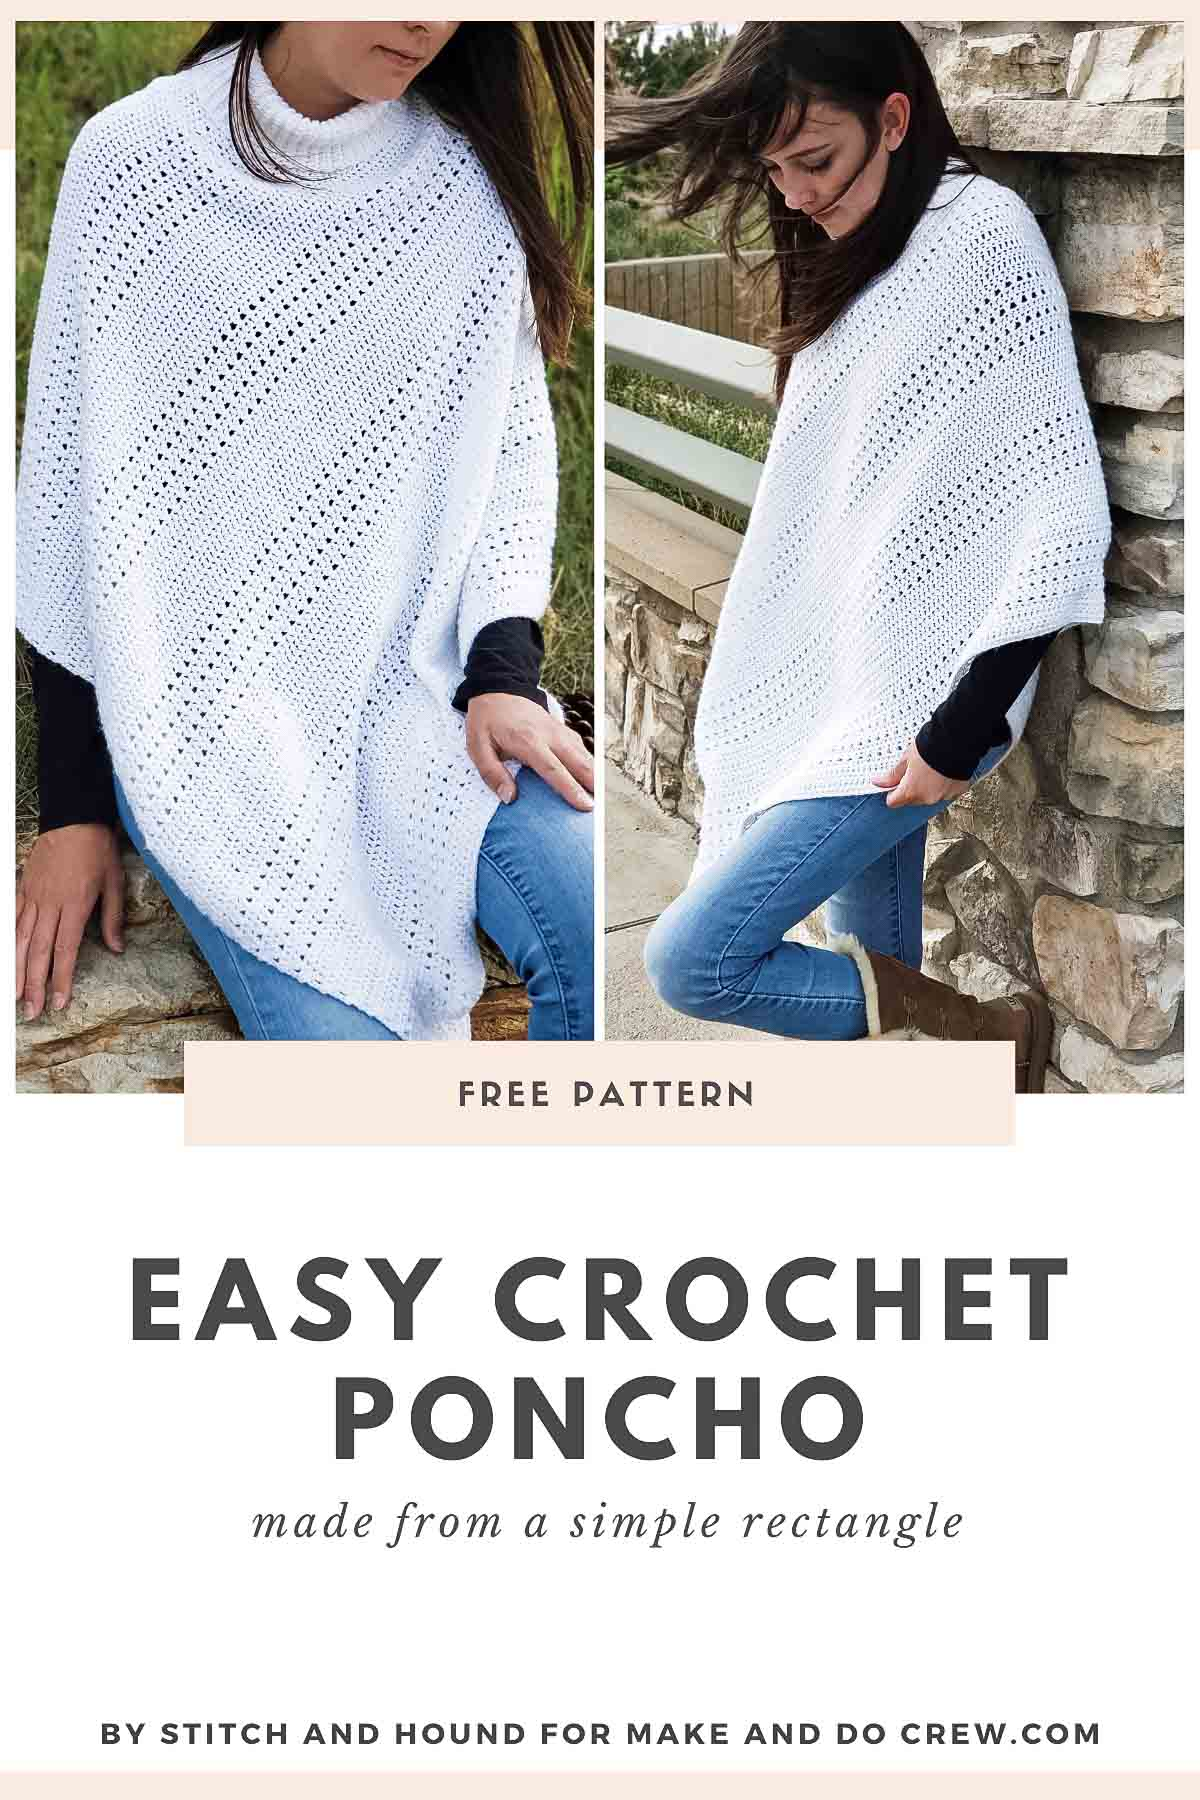 Two photos of a woman wearing a drapey crochet poncho made from an easy rectangle. Featuring Lion Brand Amazing Lace yarn.